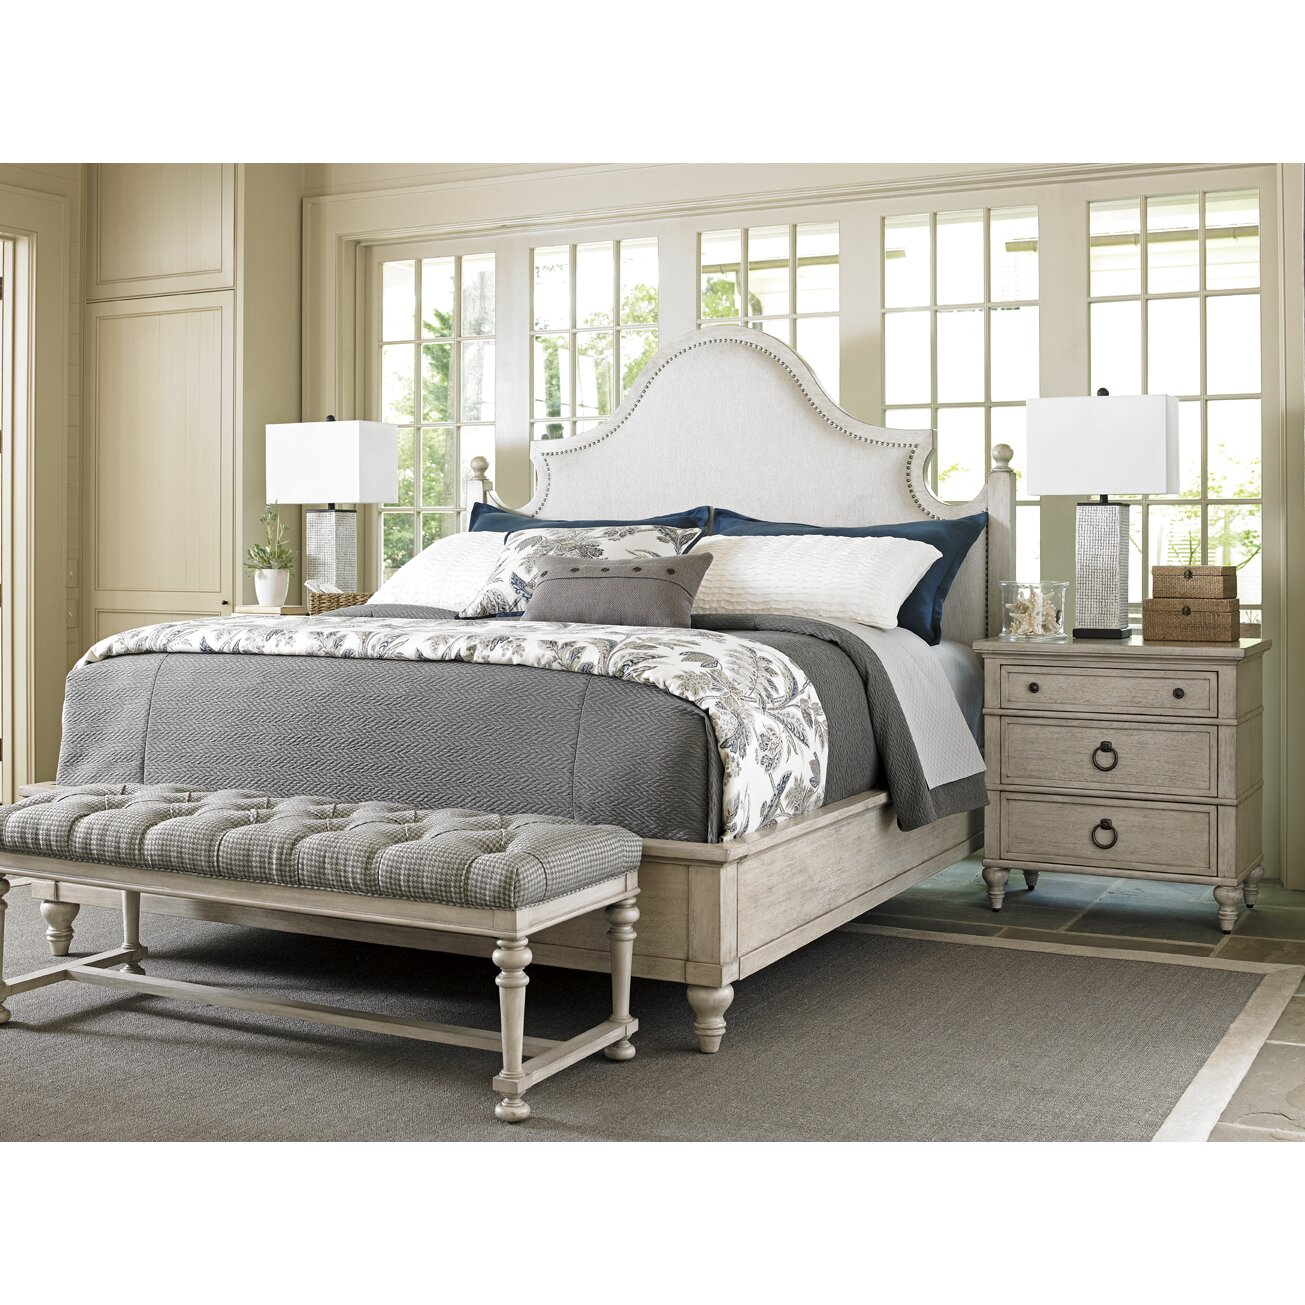 Lexington oyster bay upholstery platform customizable for Lexington bedroom furniture